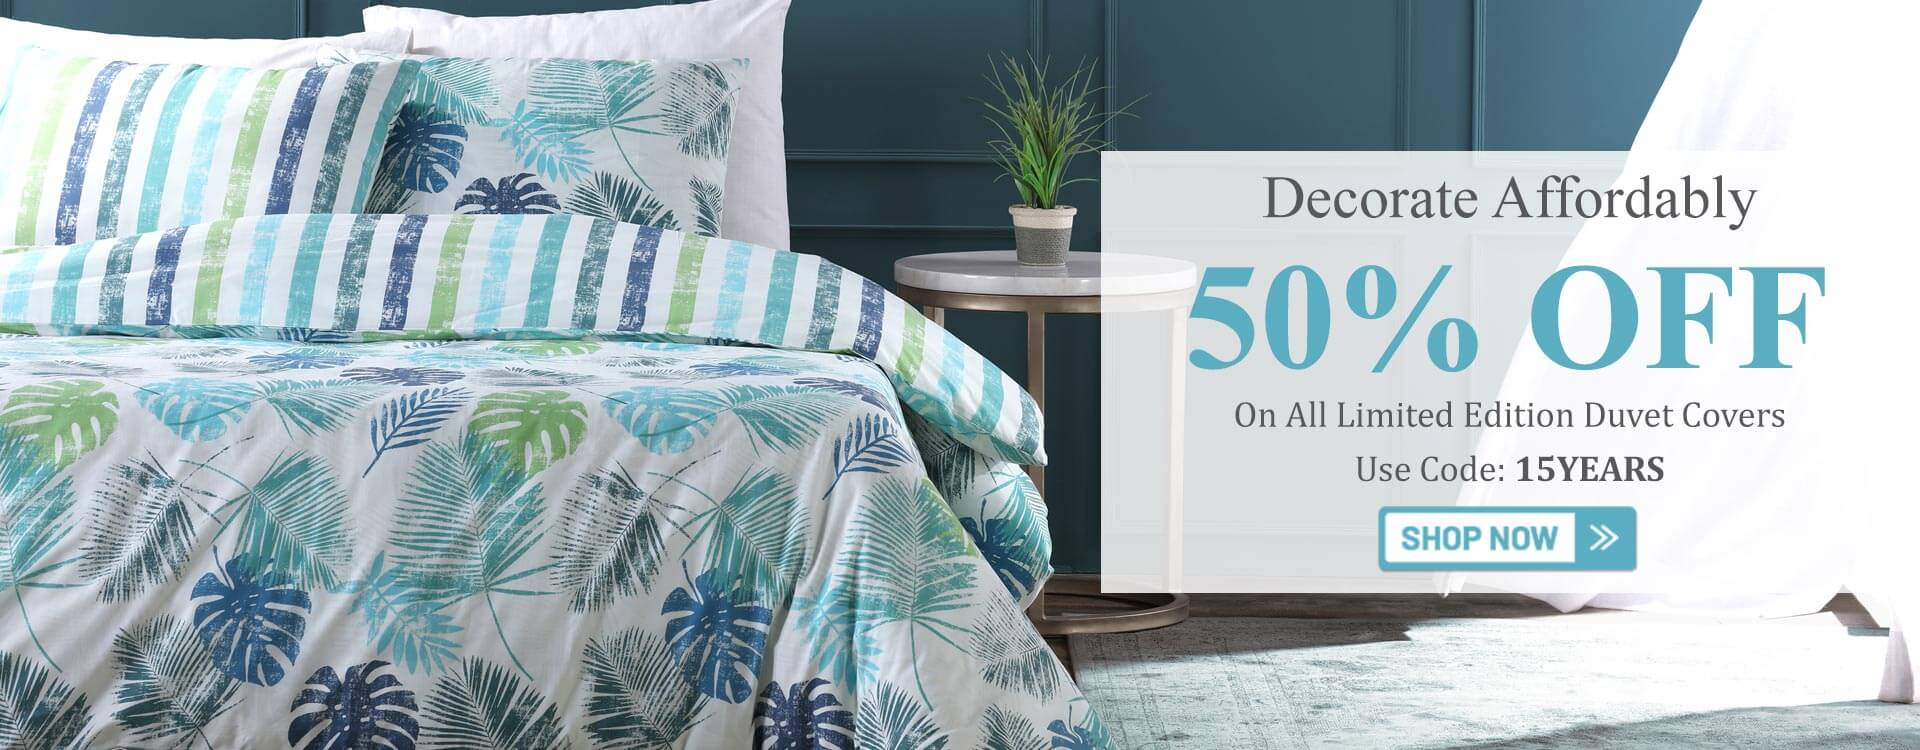 Decorate Affordably 50% OFF on All Duvet Covers